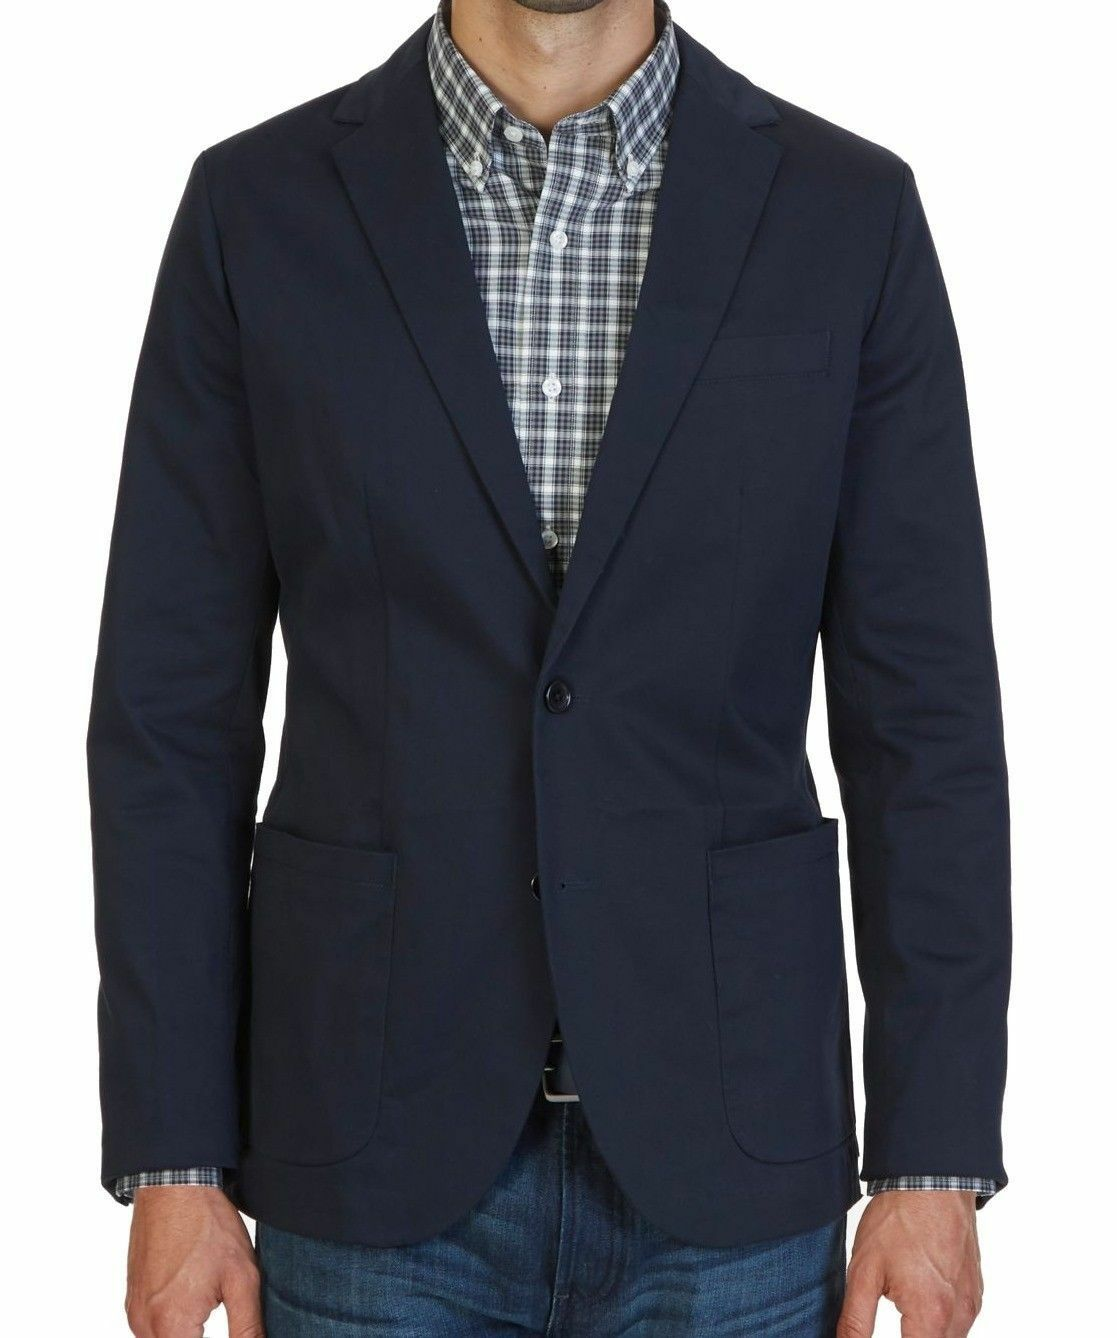 Nautica  Herren Double Navy Classic Notched-Lapel Two-Button Blazer Sportcoat L